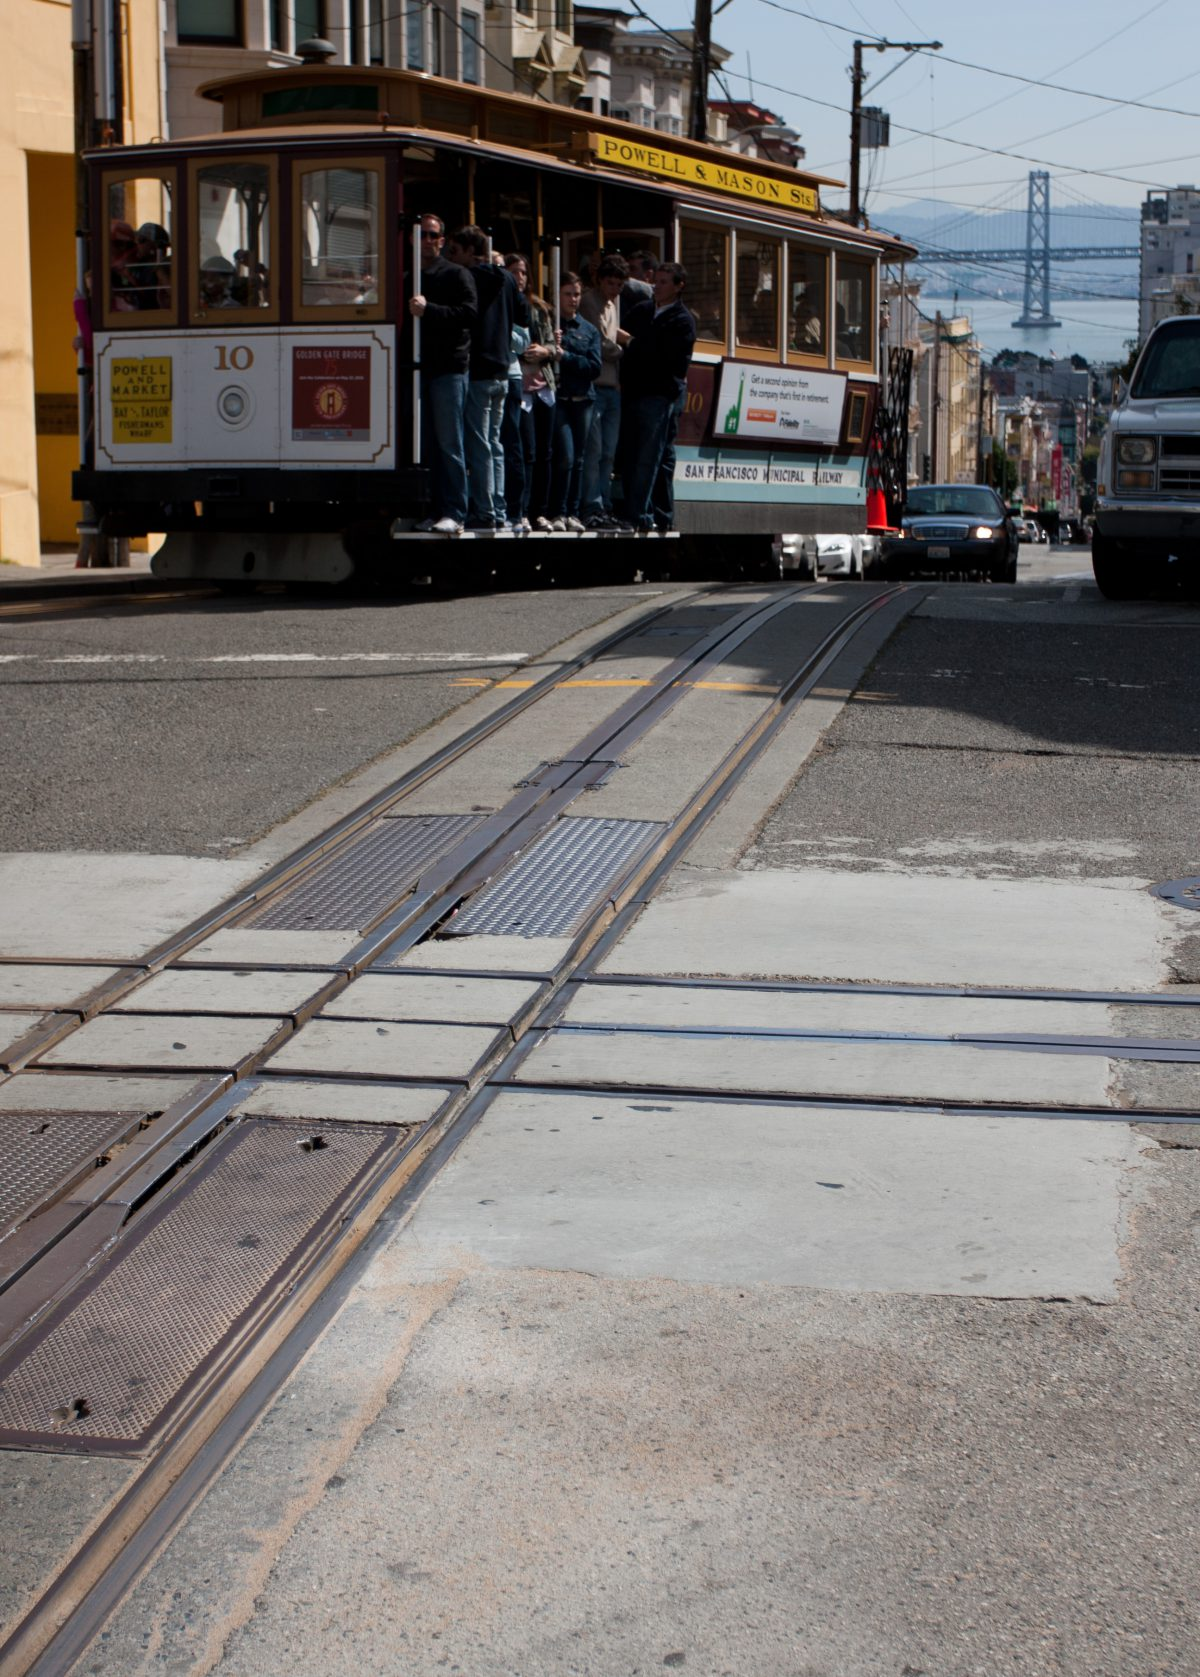 Cable car, vehicle, hill, road, cableCar